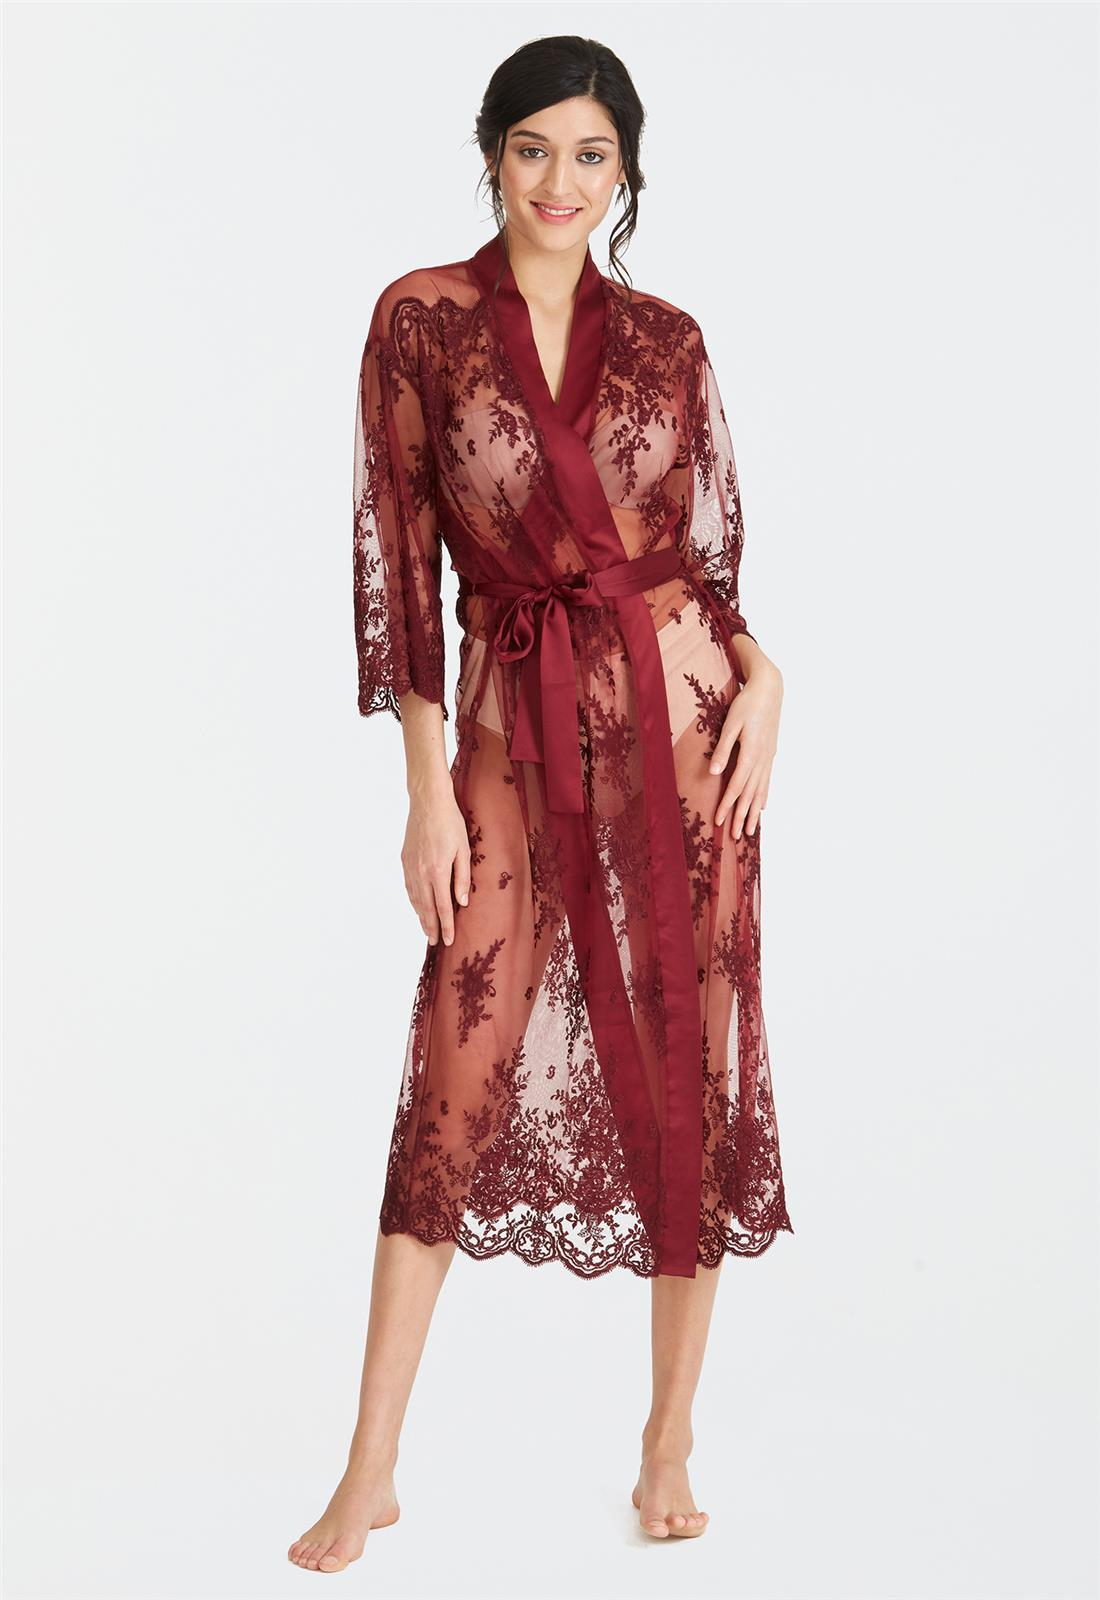 Darling Robe Burgundy